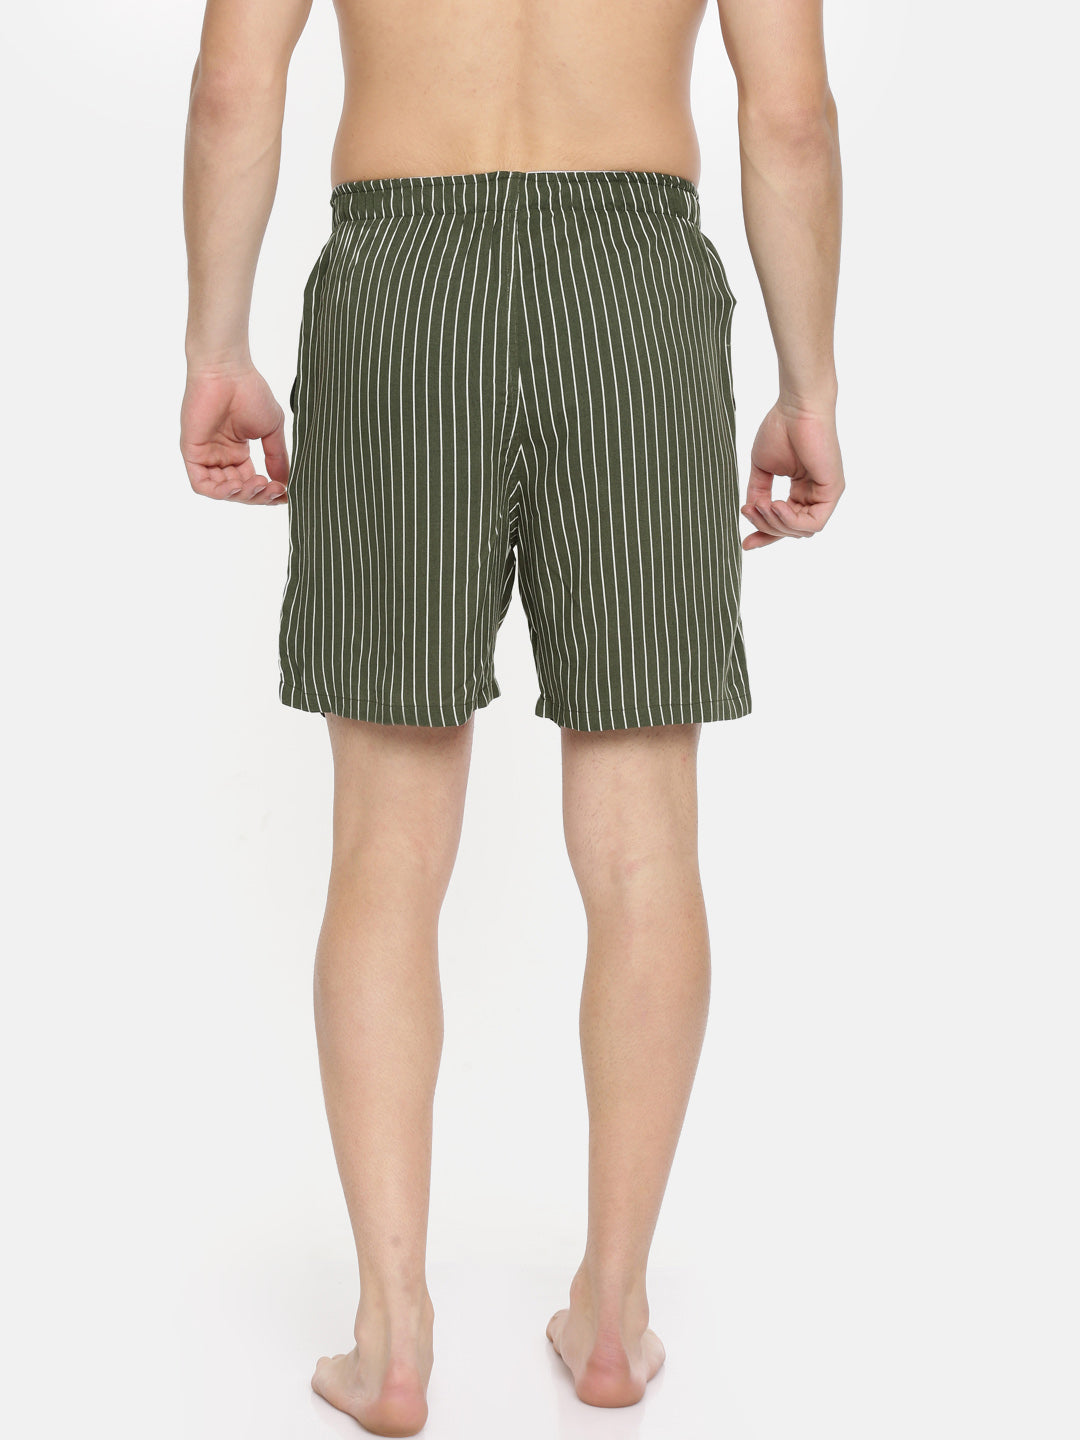 The Olive Green Stripe